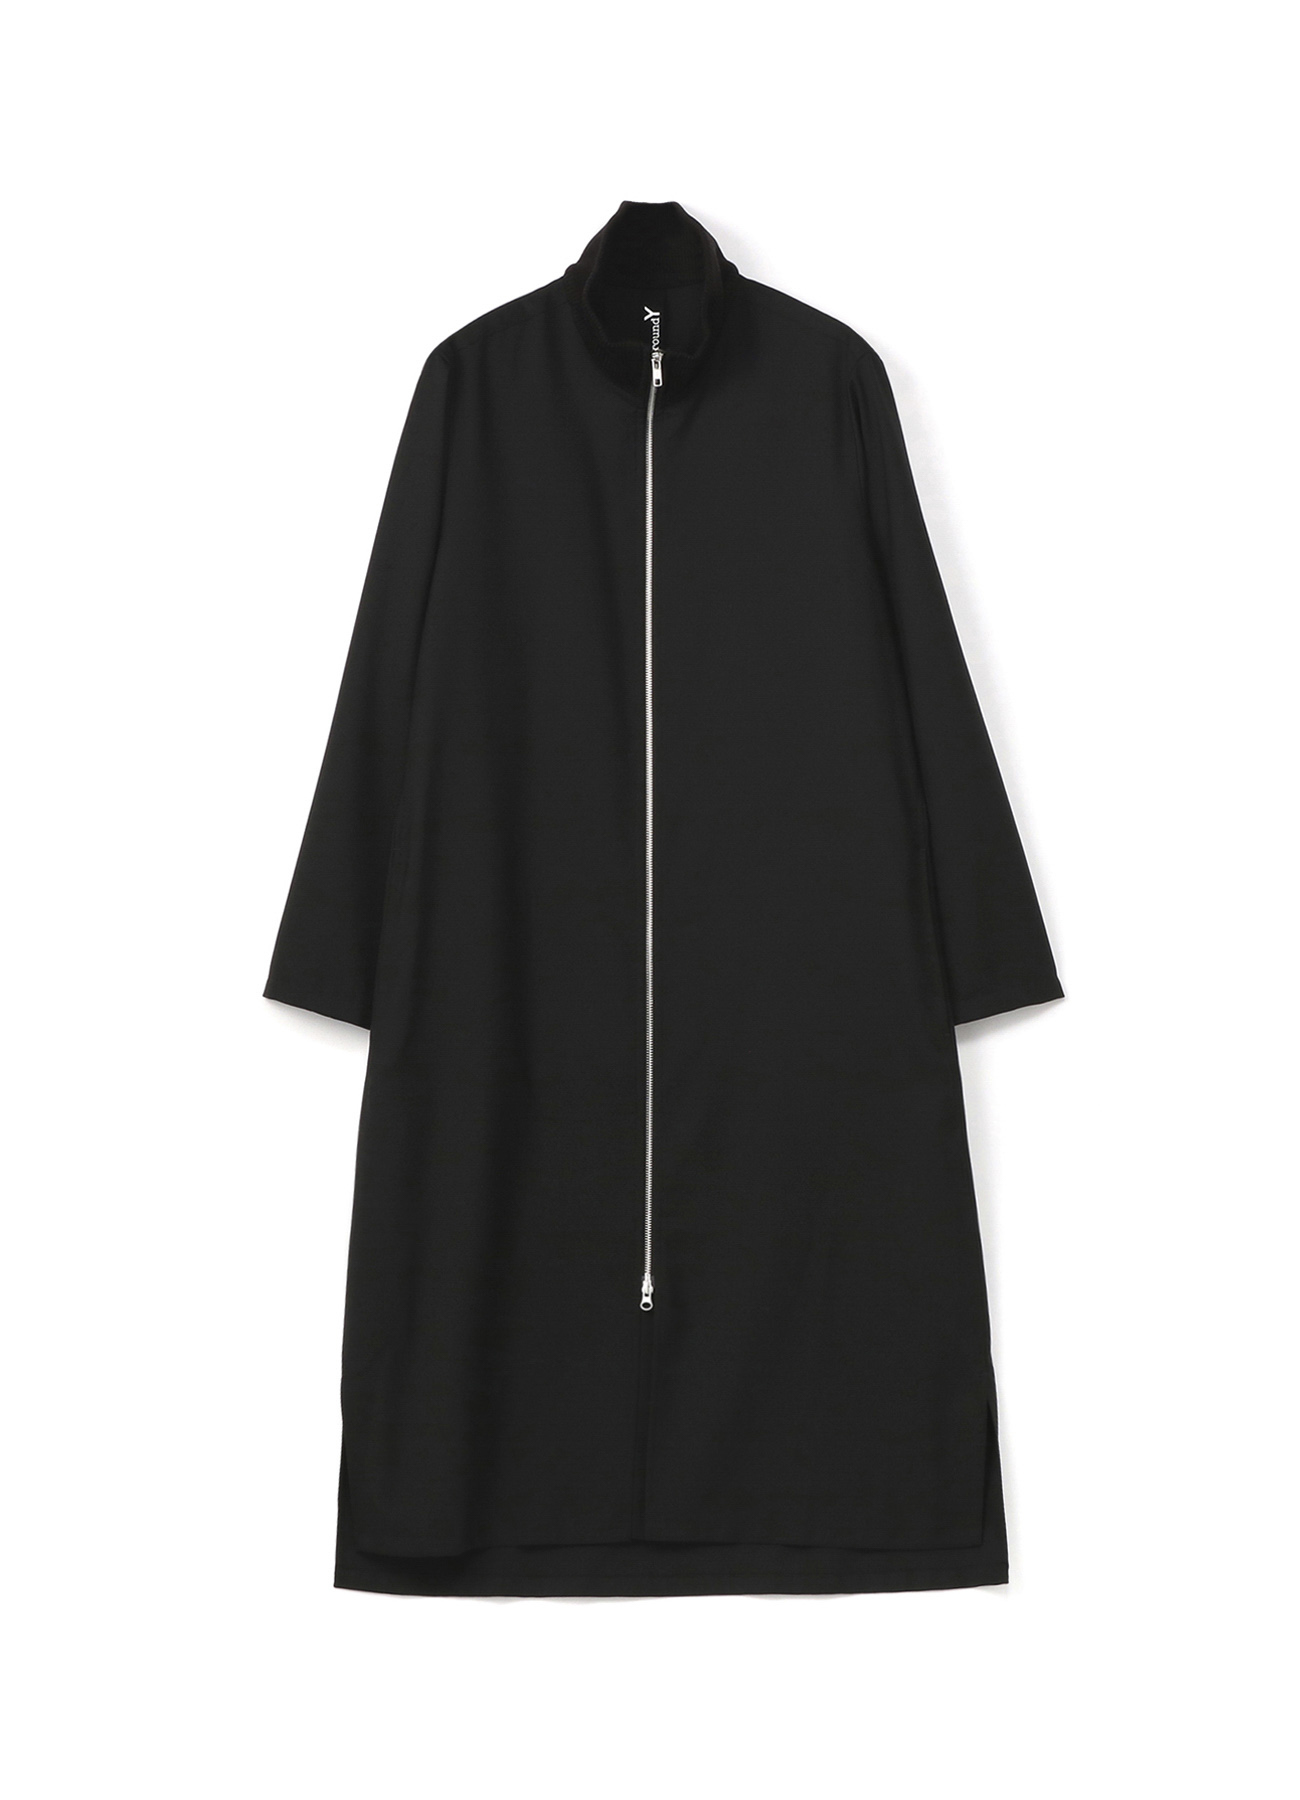 T/W Gabardine Rib Collar Long Shirt